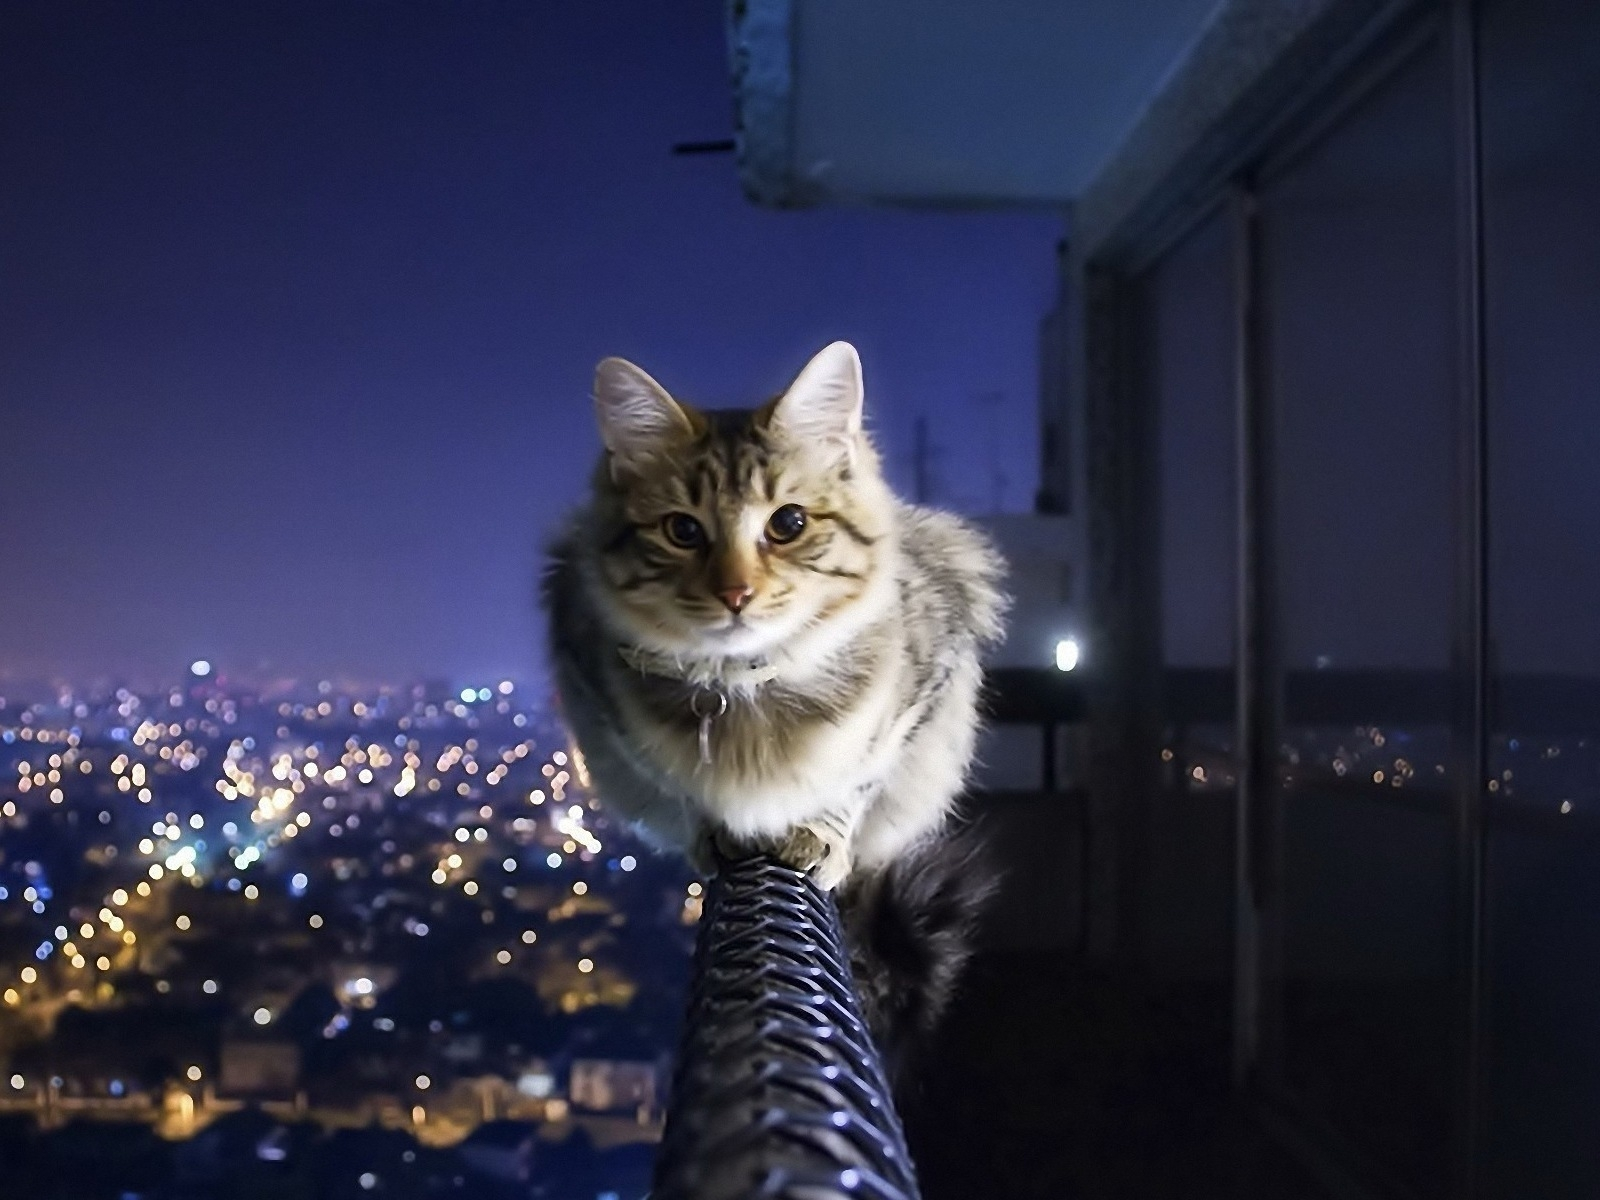 lovely cat wallpapers, best lovely cat wallpapers in high quality